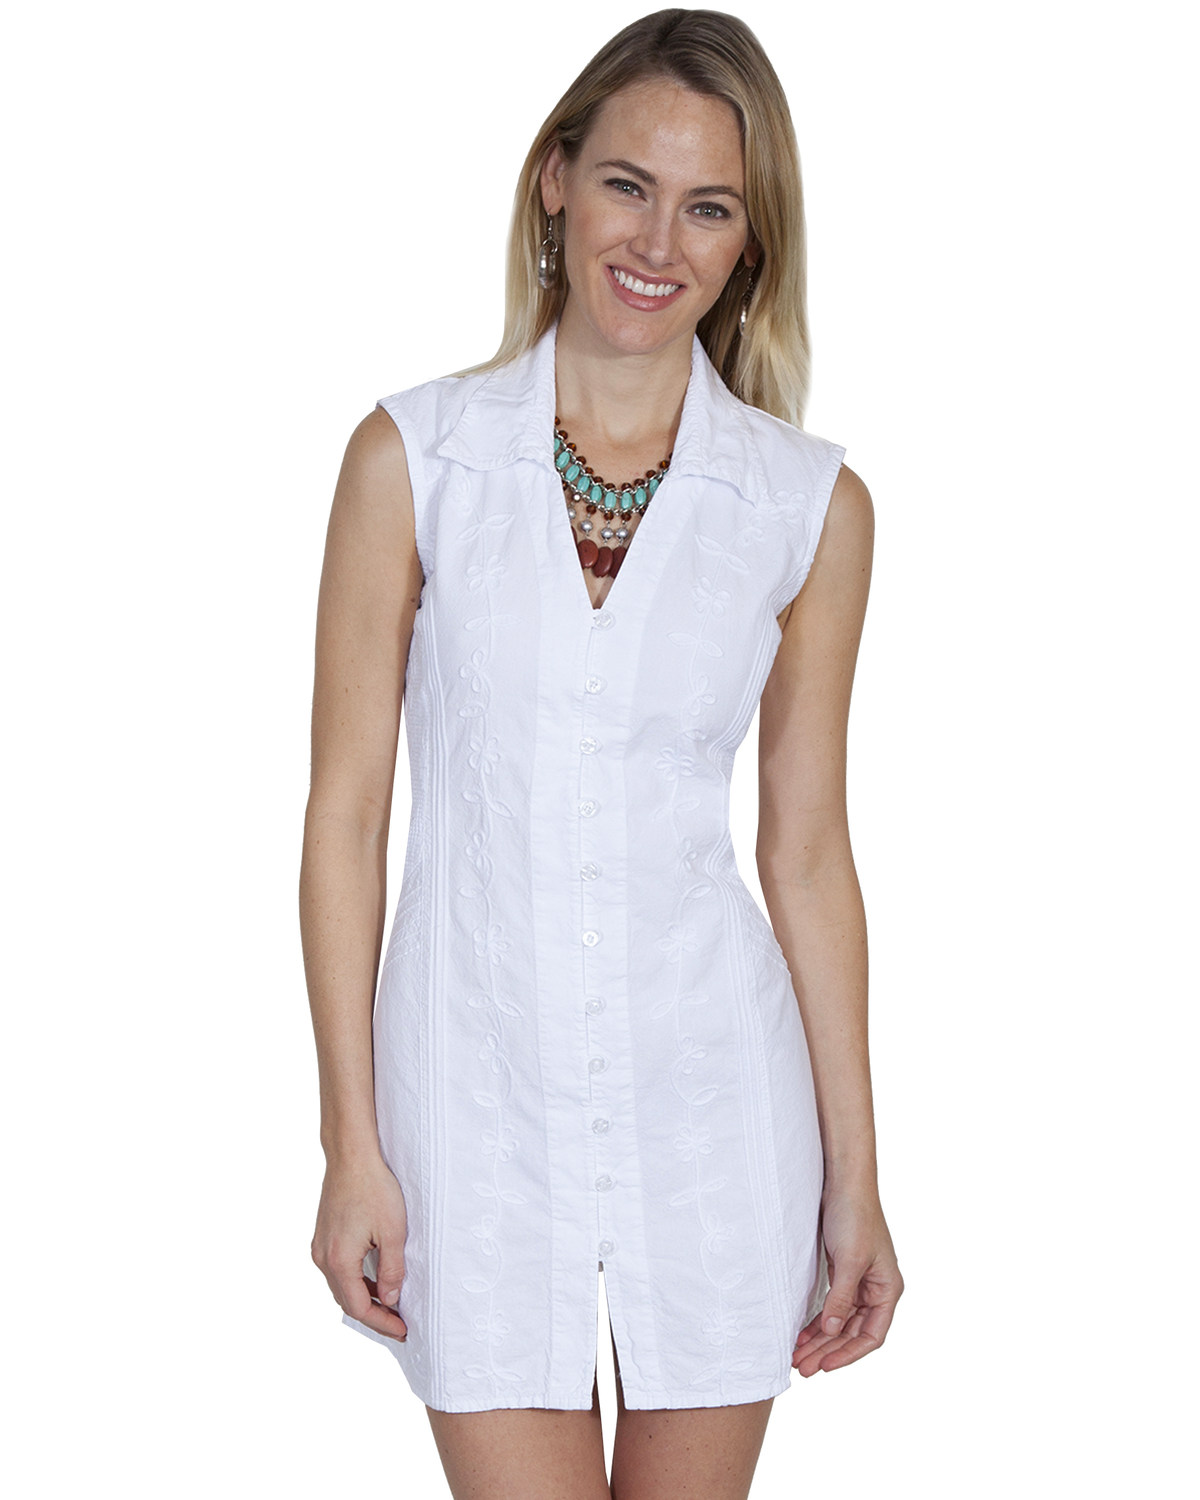 2d75a37e Zoomed Image Cantina by Scully Women's White Button Down Dress, White,  hi-res. Zoomed Image ...